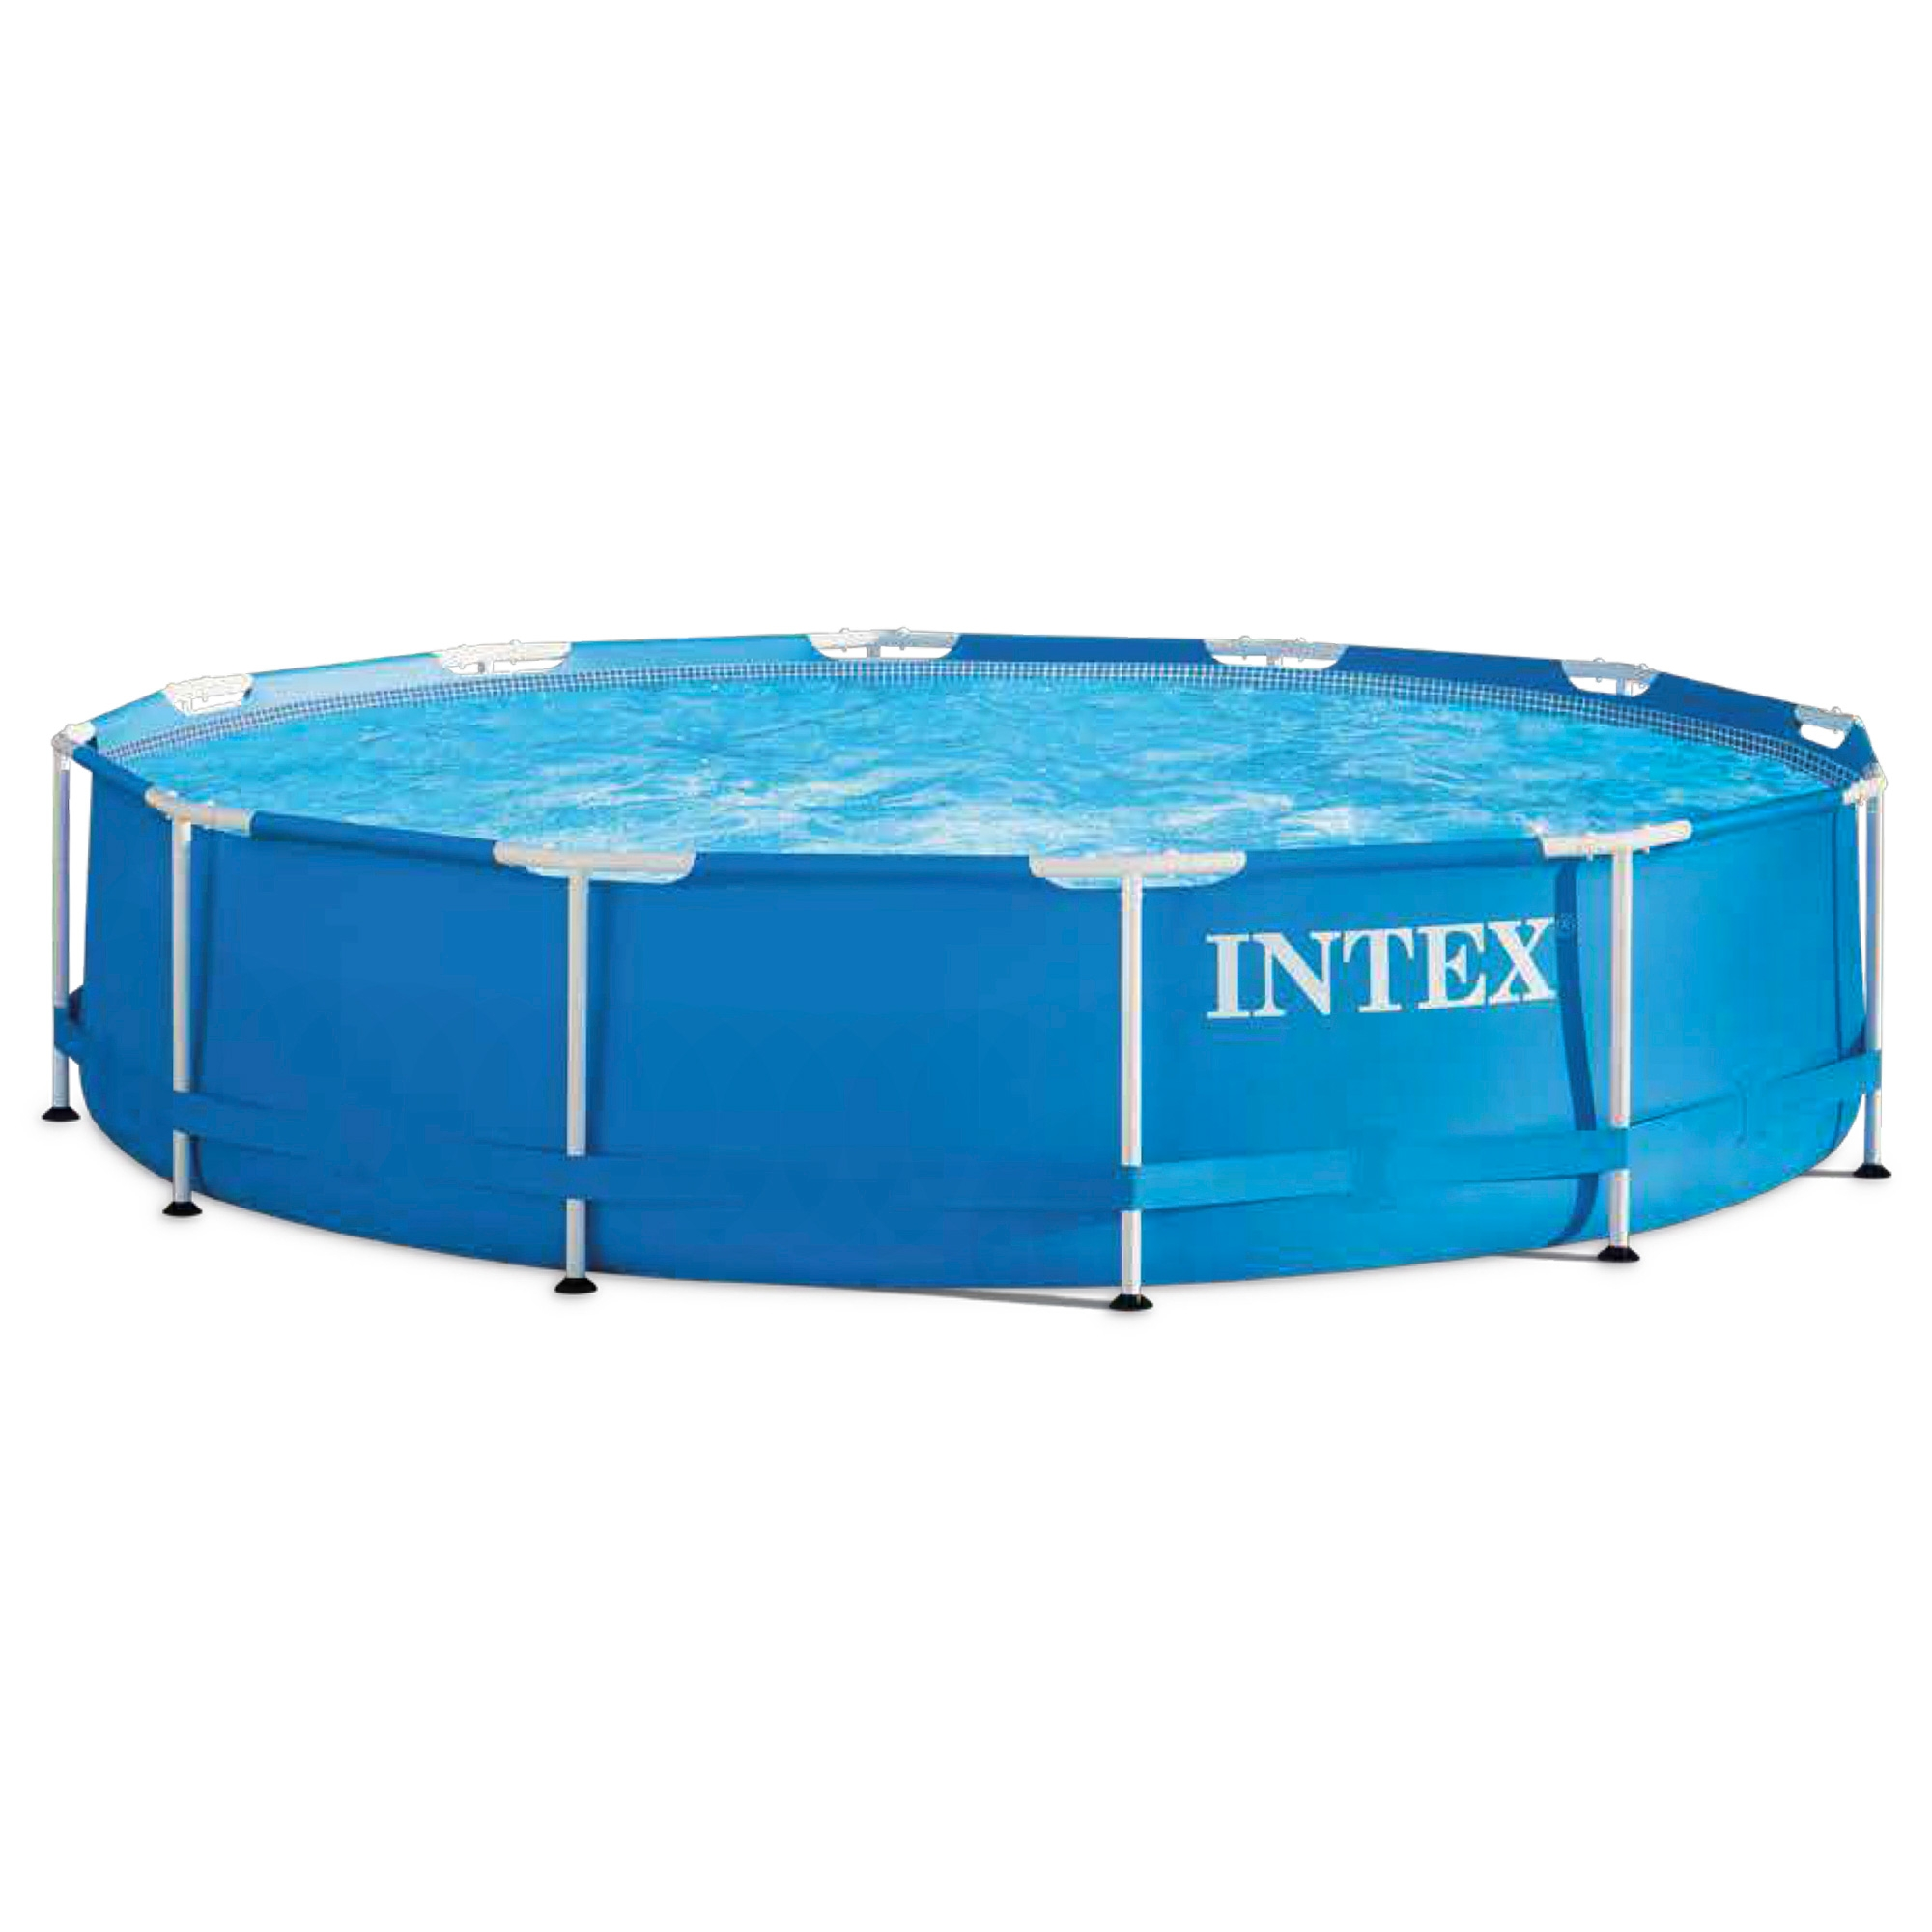 Scaffold Round Pool For Garden Summer Leisure Outdoor Size 366 х76 Cm, 6503 L, Intex Metal Frame, Item No. 28210np